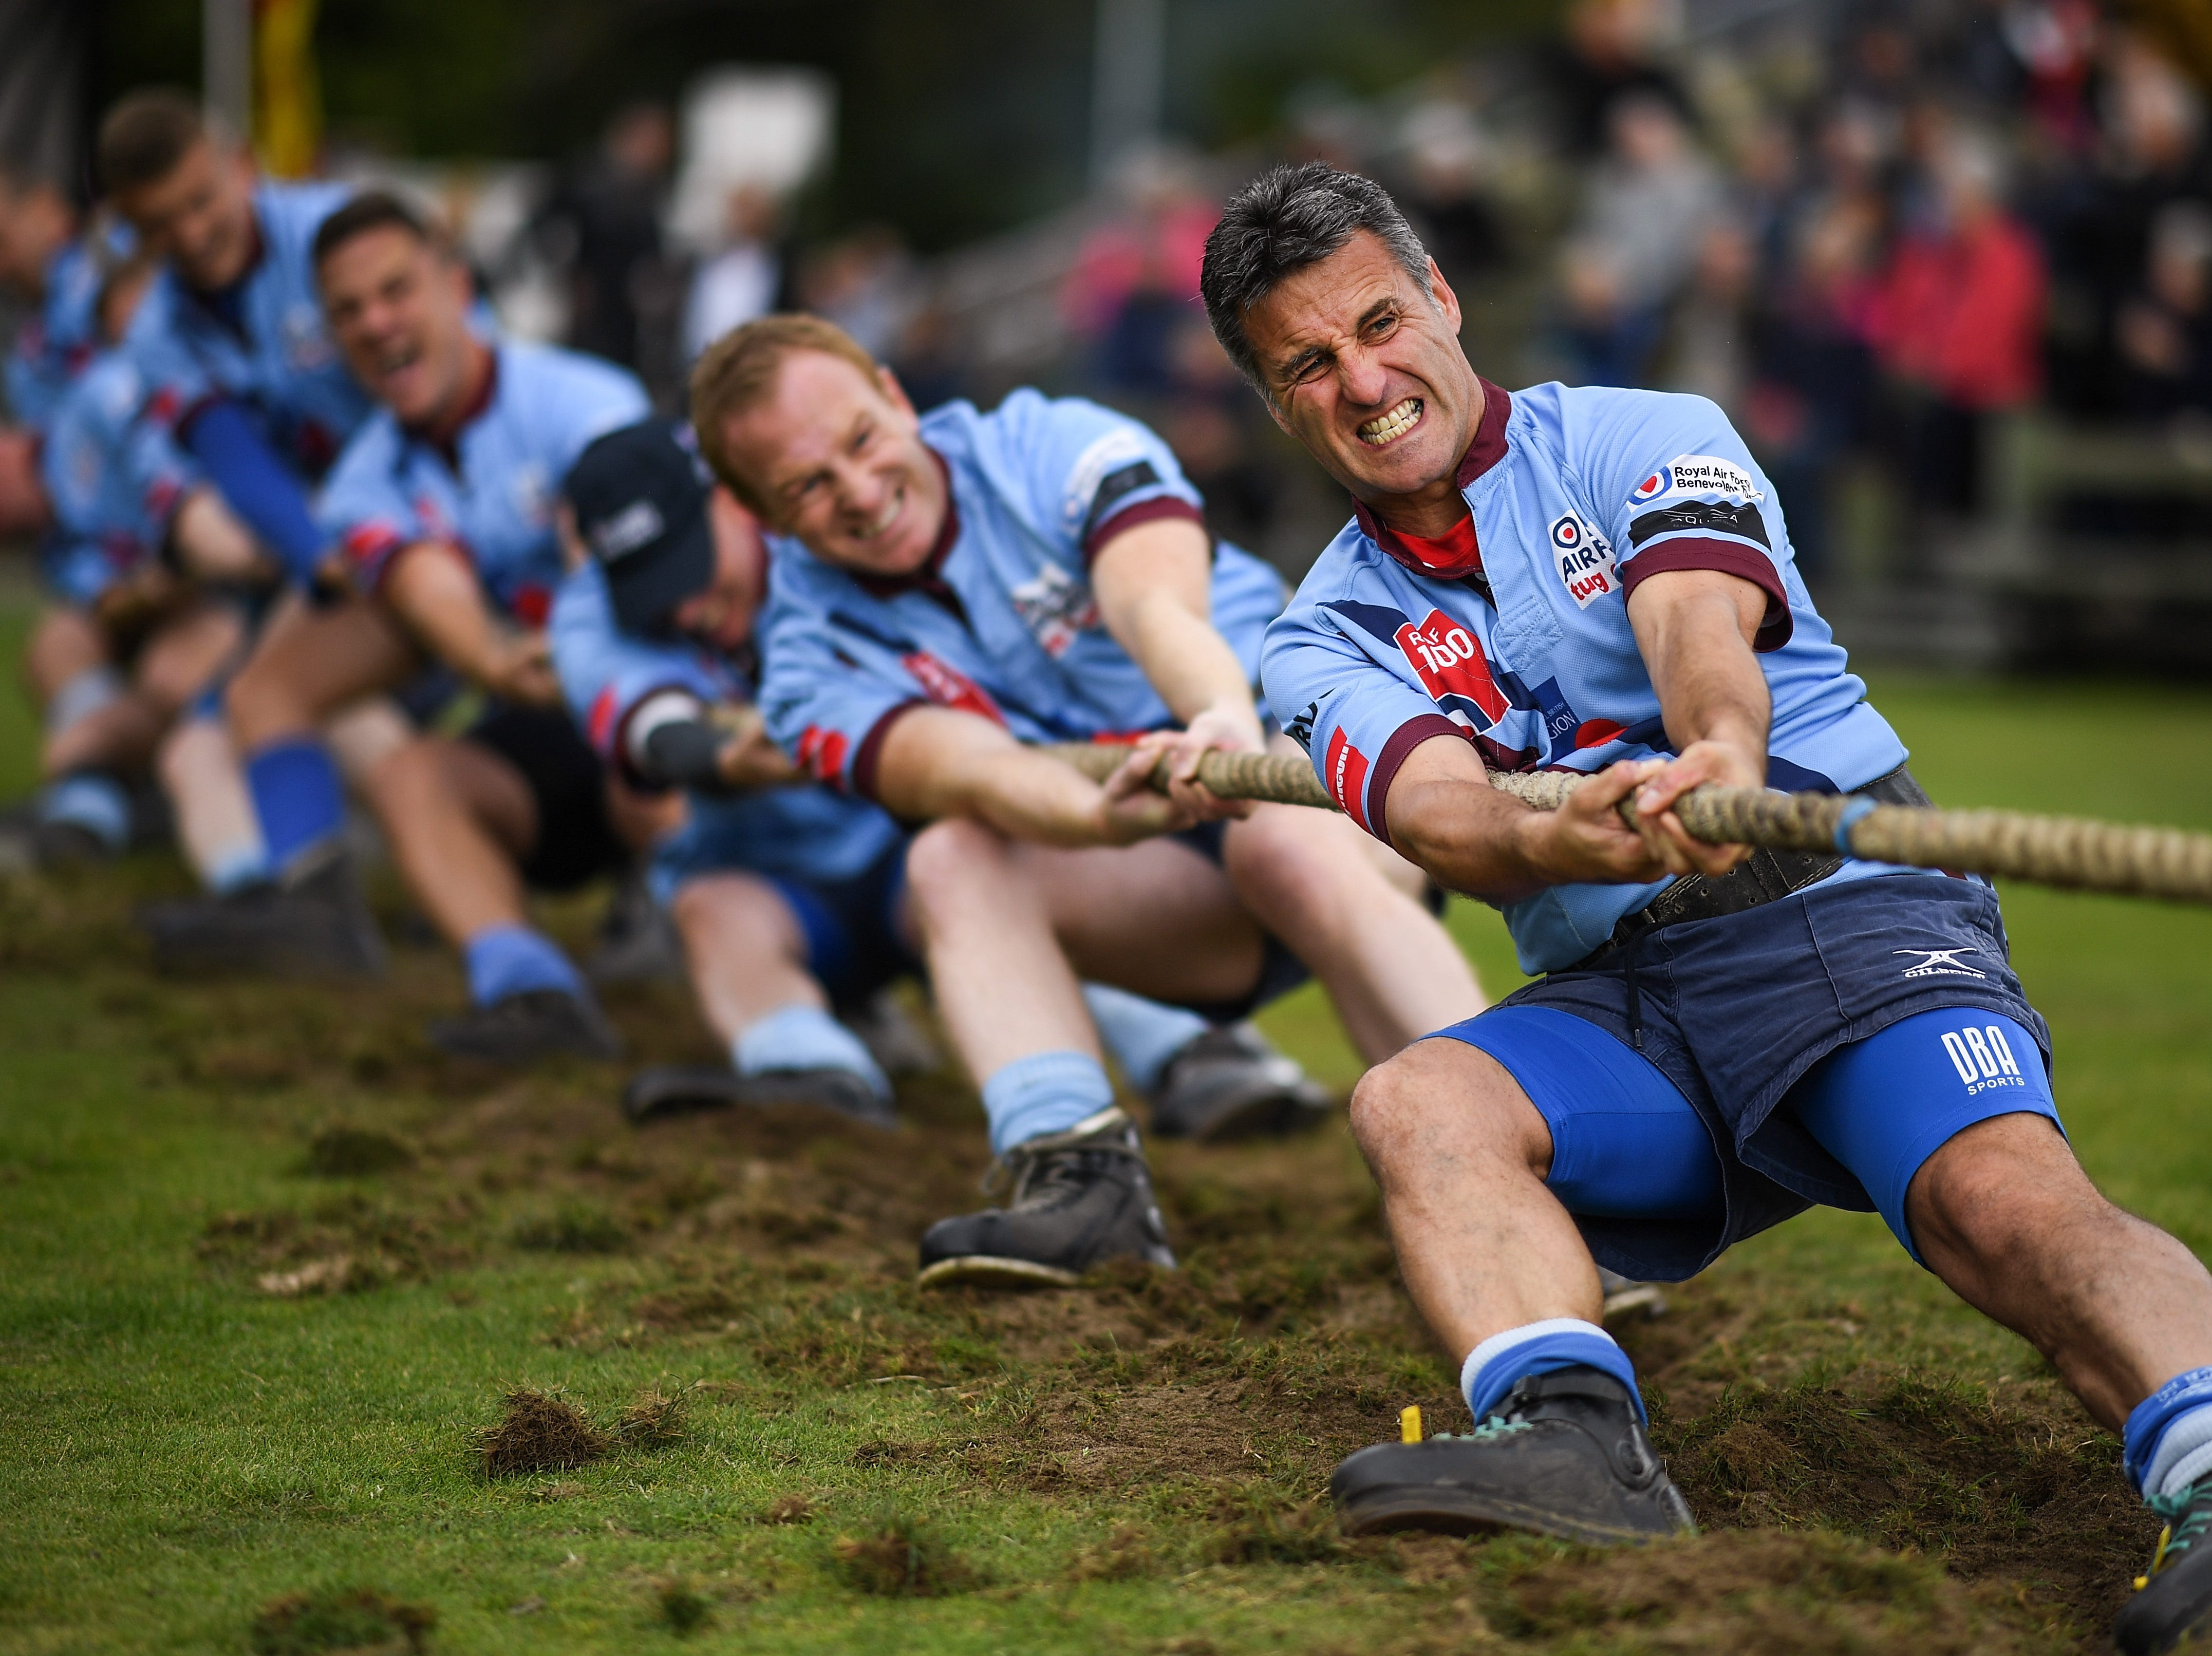 Competitors take part in the tug of war at the annual Braemer Highland Games at The Princess Royal and Duke of Fife Memorial Park on Sept. 1, 2018in Braemar, Scotland.